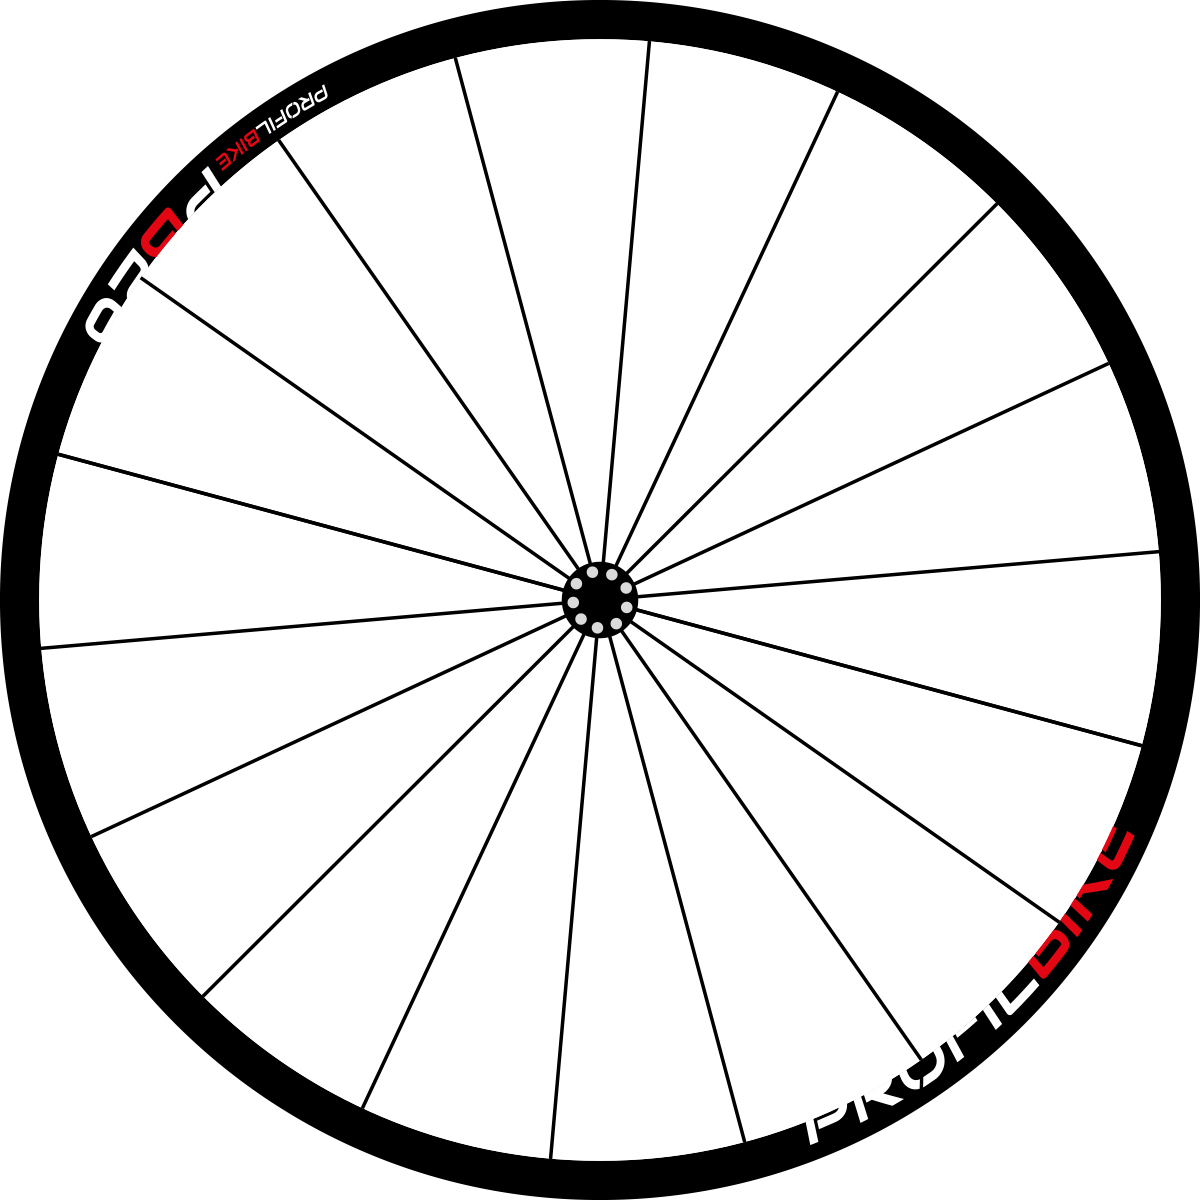 Profilbike PB26 ALU DISC design rouge